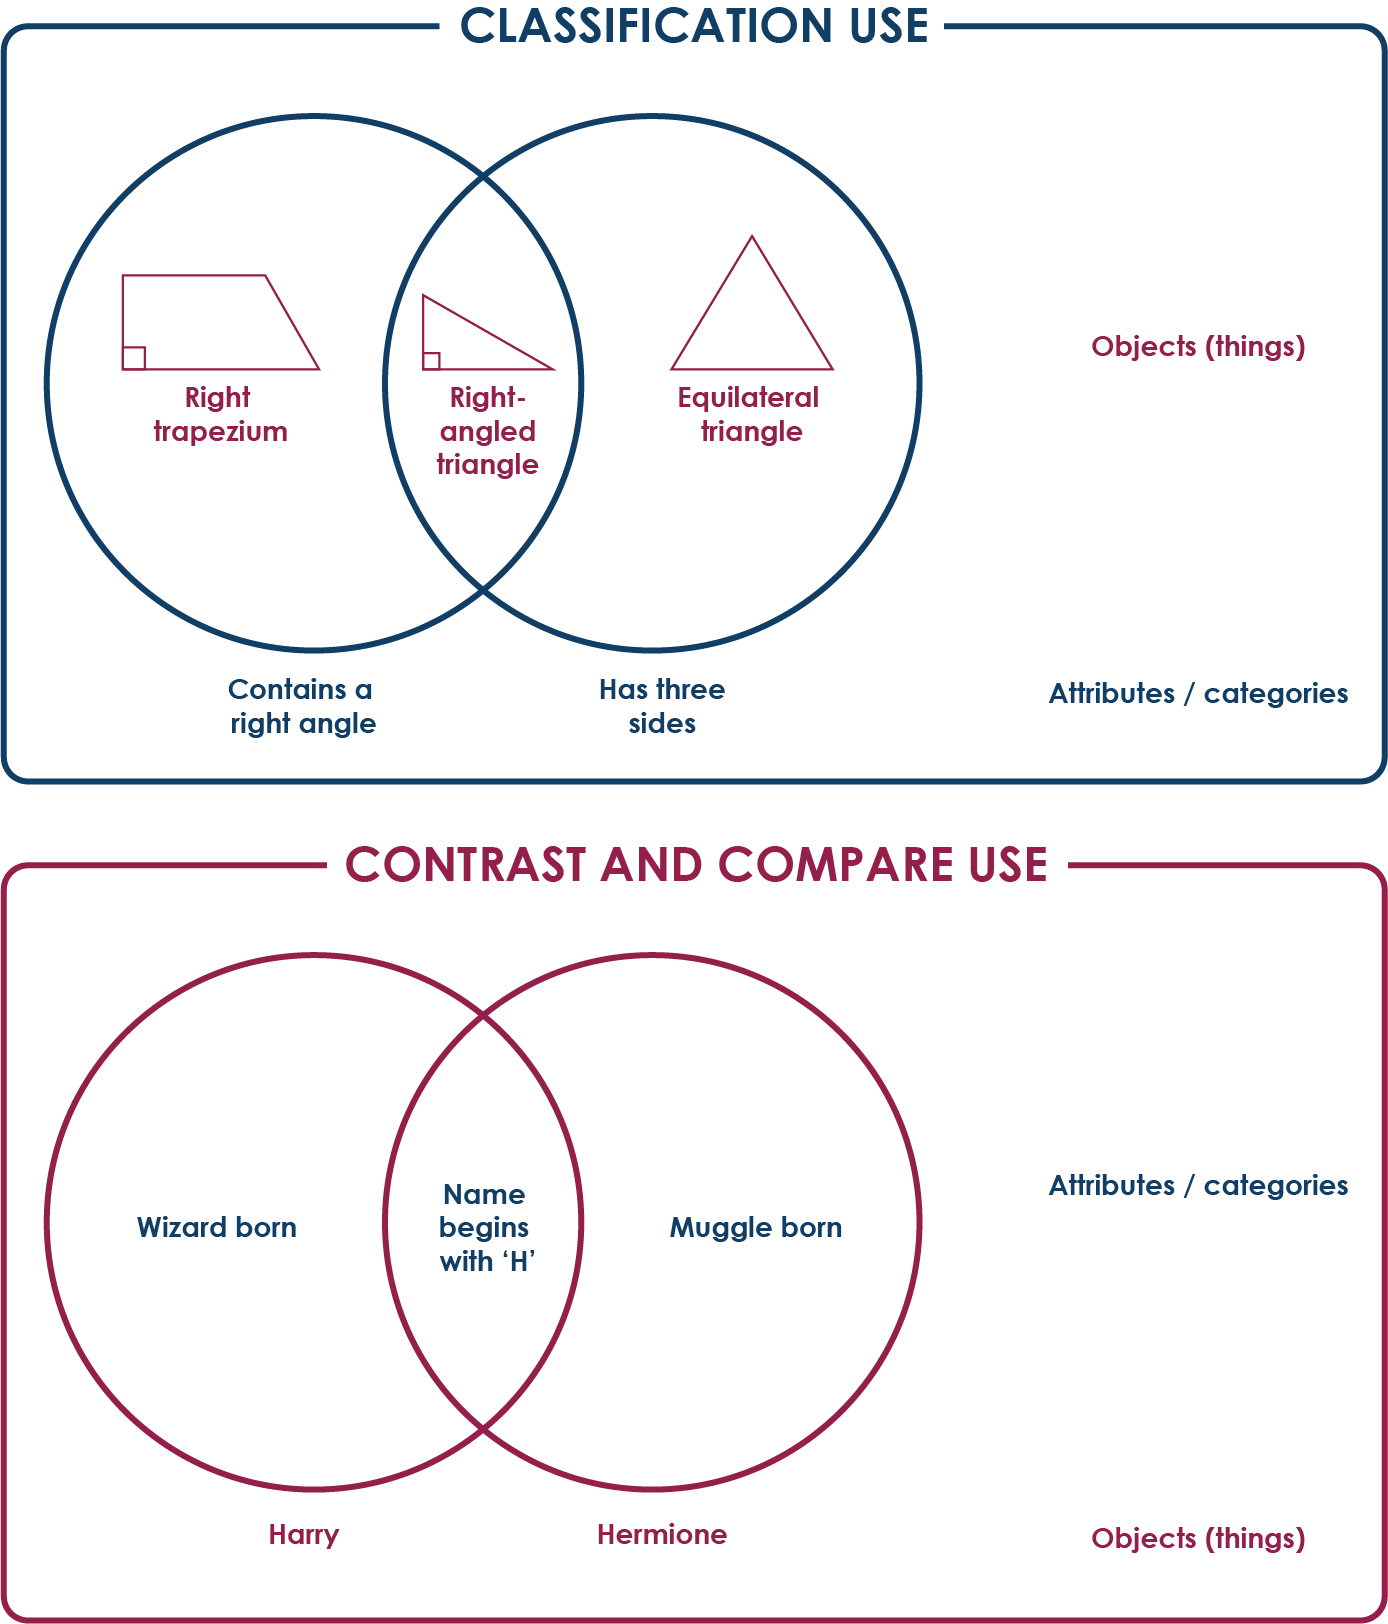 Venn diagram on Classification use against contrast and compare use